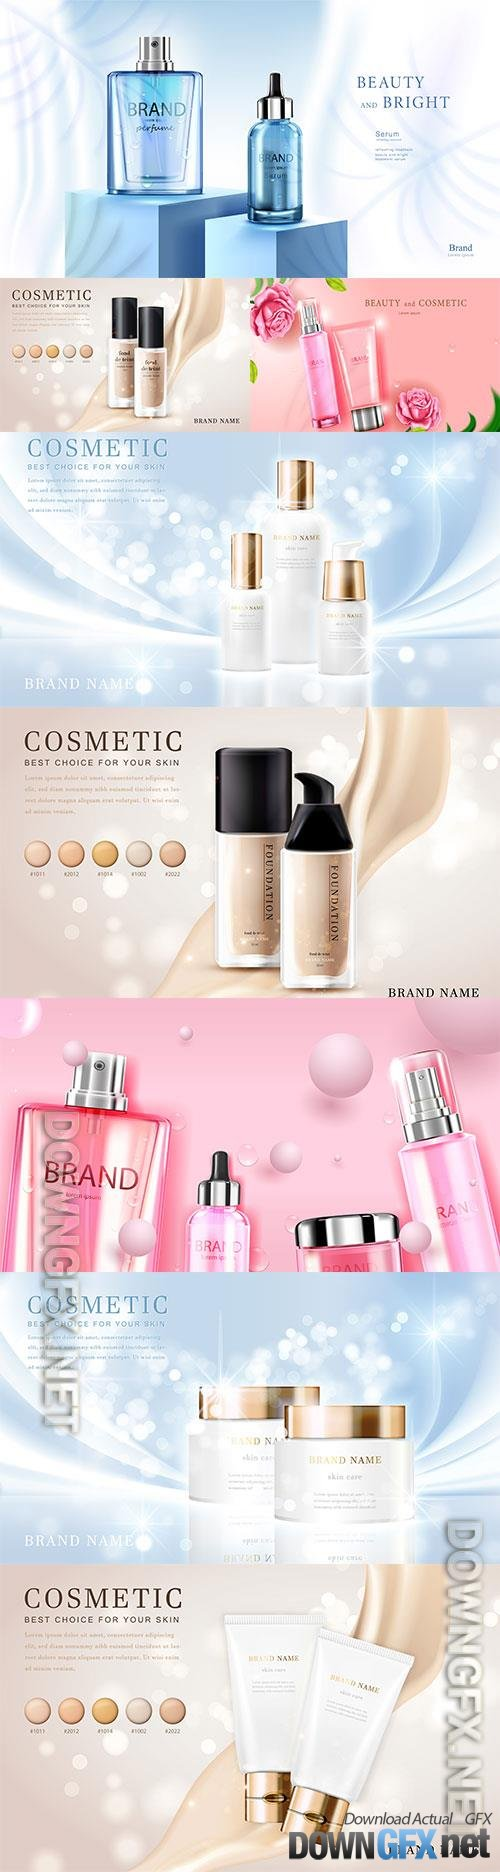 3d cosmetic make up vector illustration